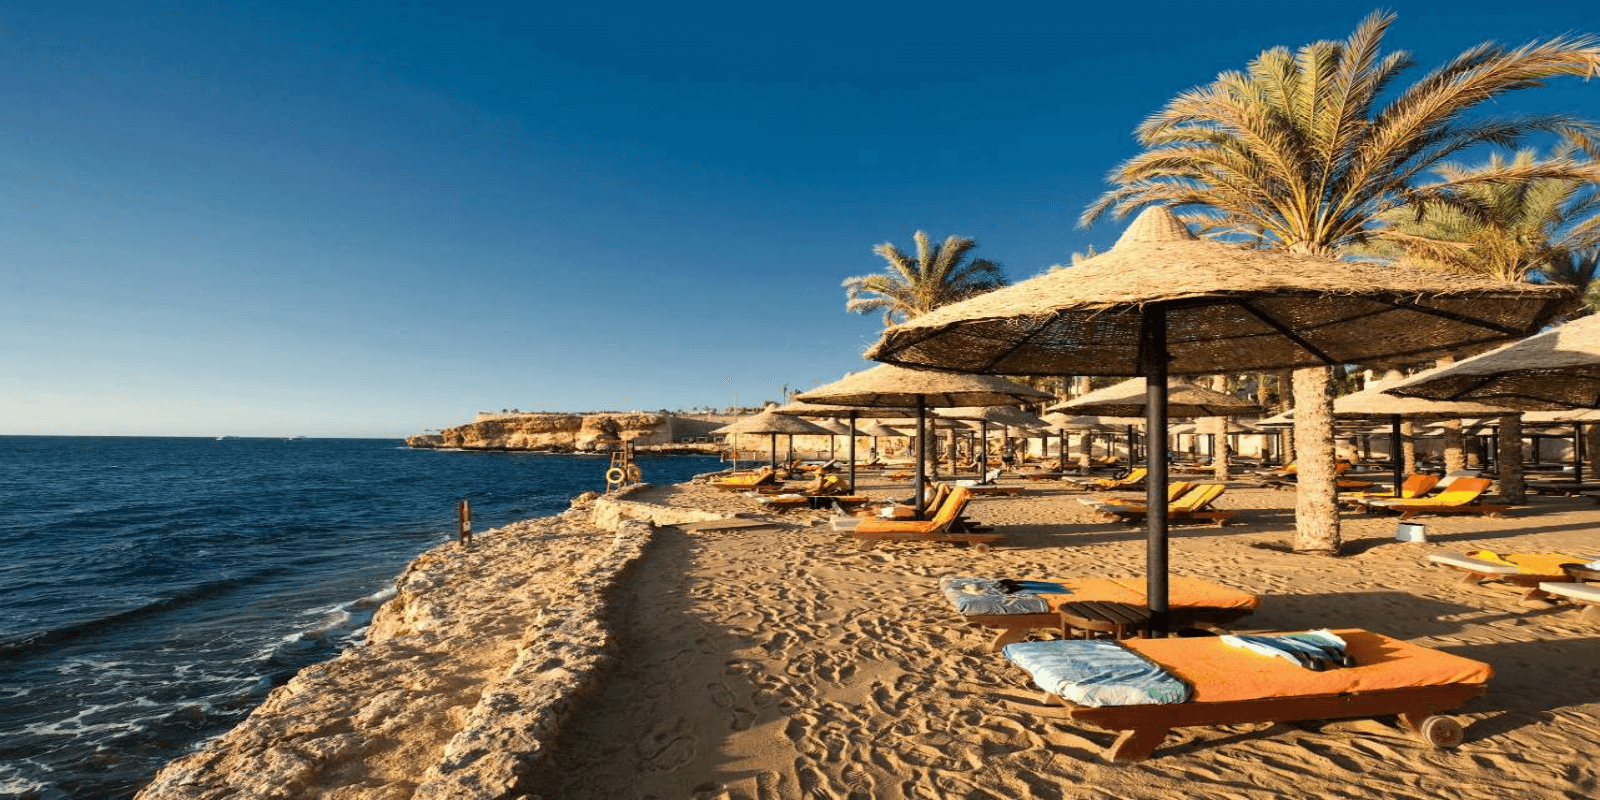 The Grand Hotel beach, Sharm el Sheikh